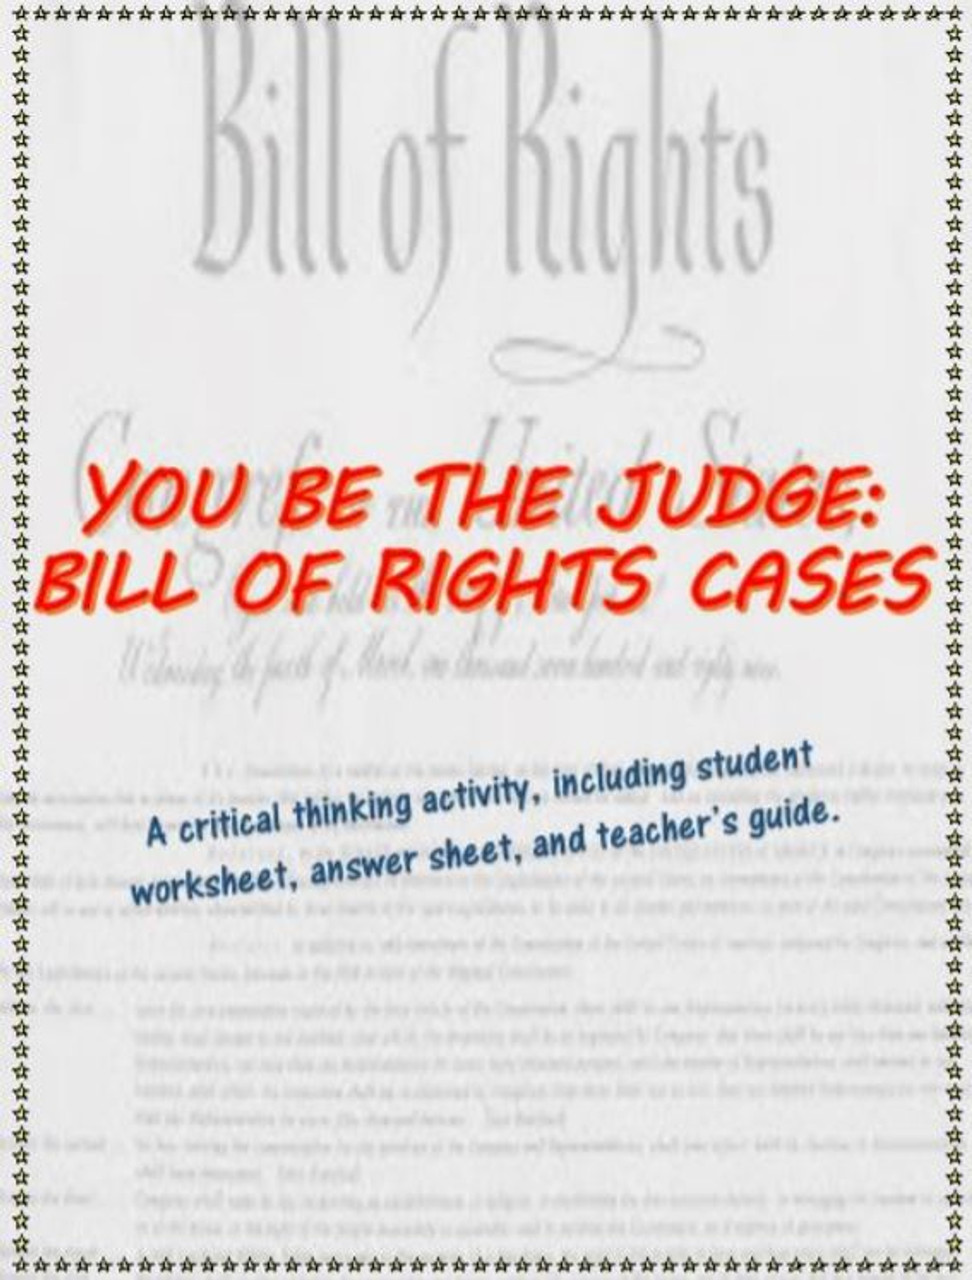 medium resolution of You Be the Judge - analyzing Supreme Court cases on the Bill of Rights -  Amped Up Learning